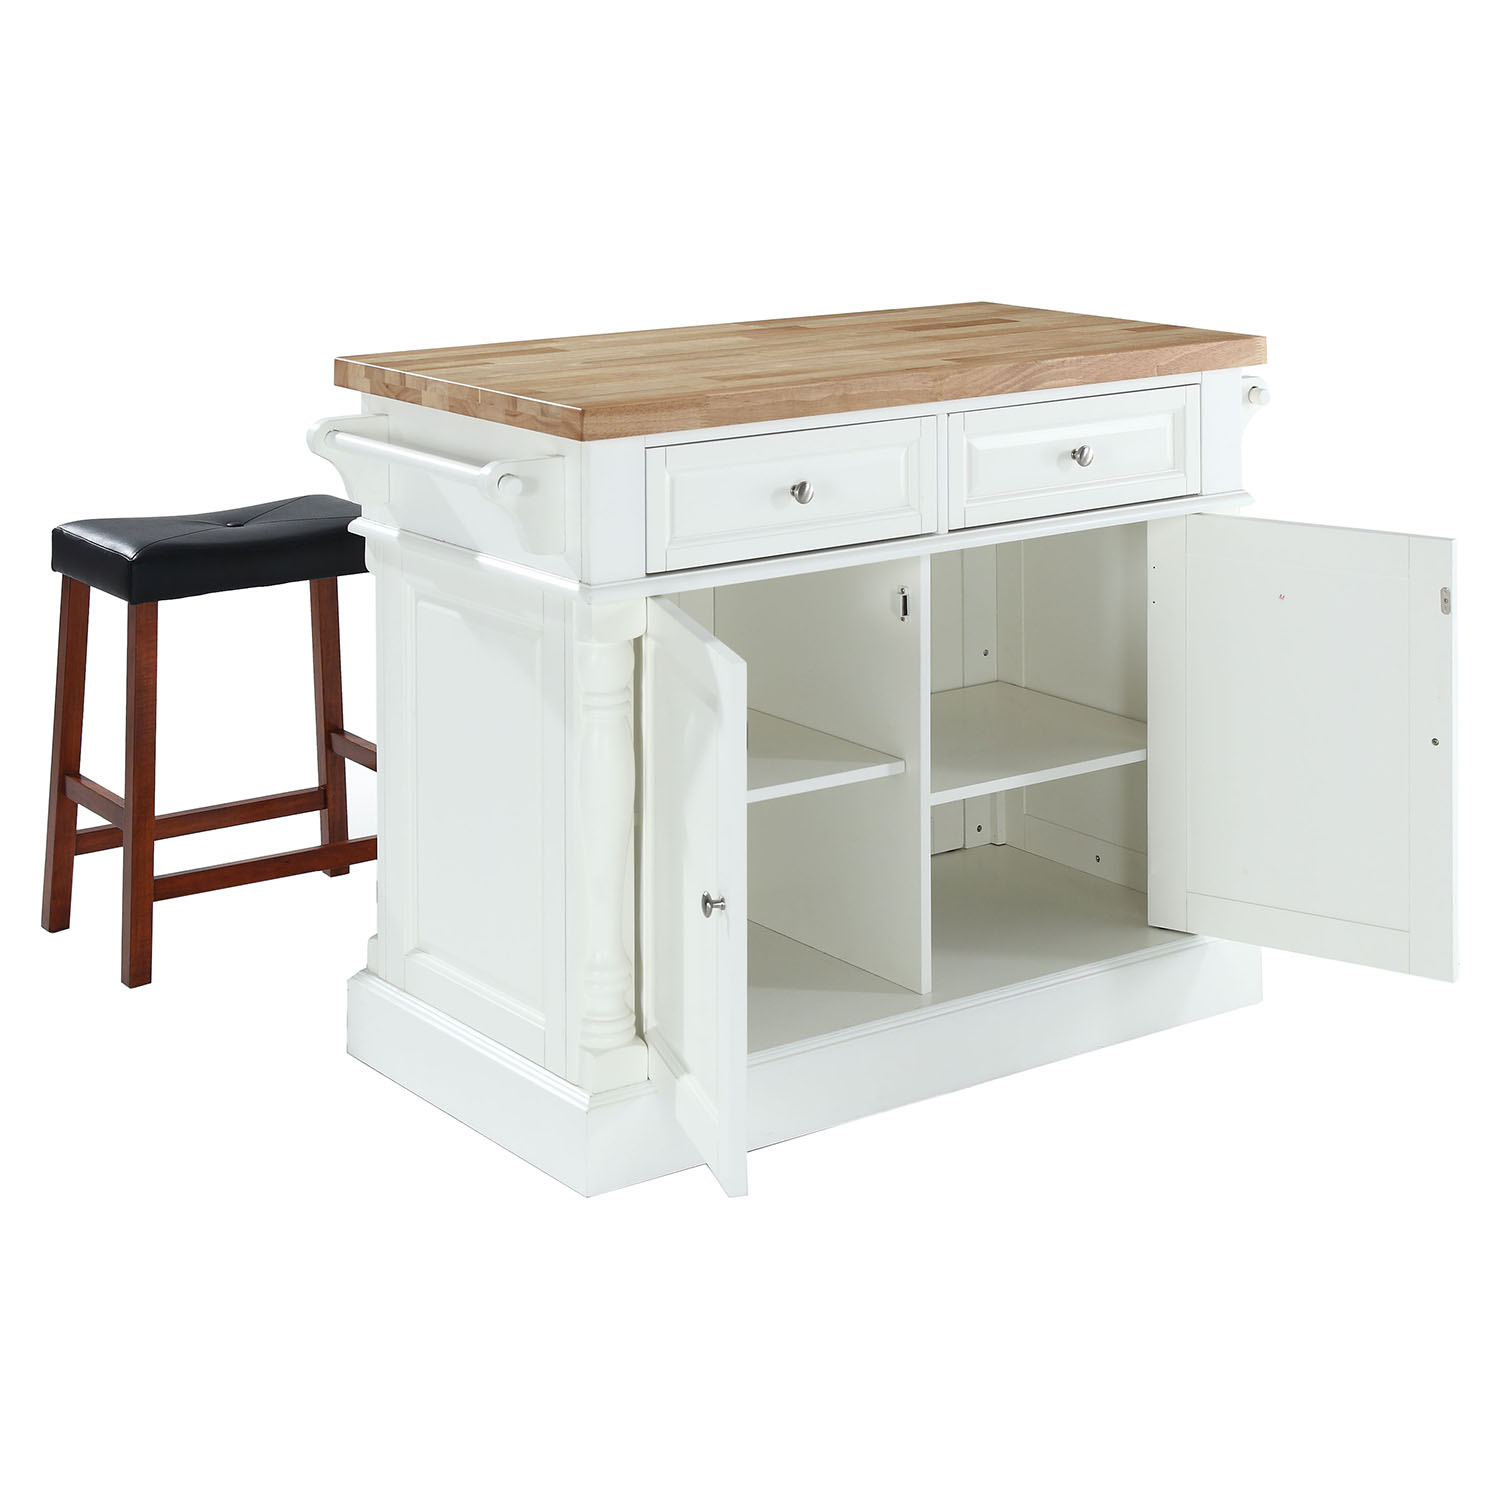 Butcher Block Top Kitchen Island and Saddle Stools - White - CROS-KF300064WH